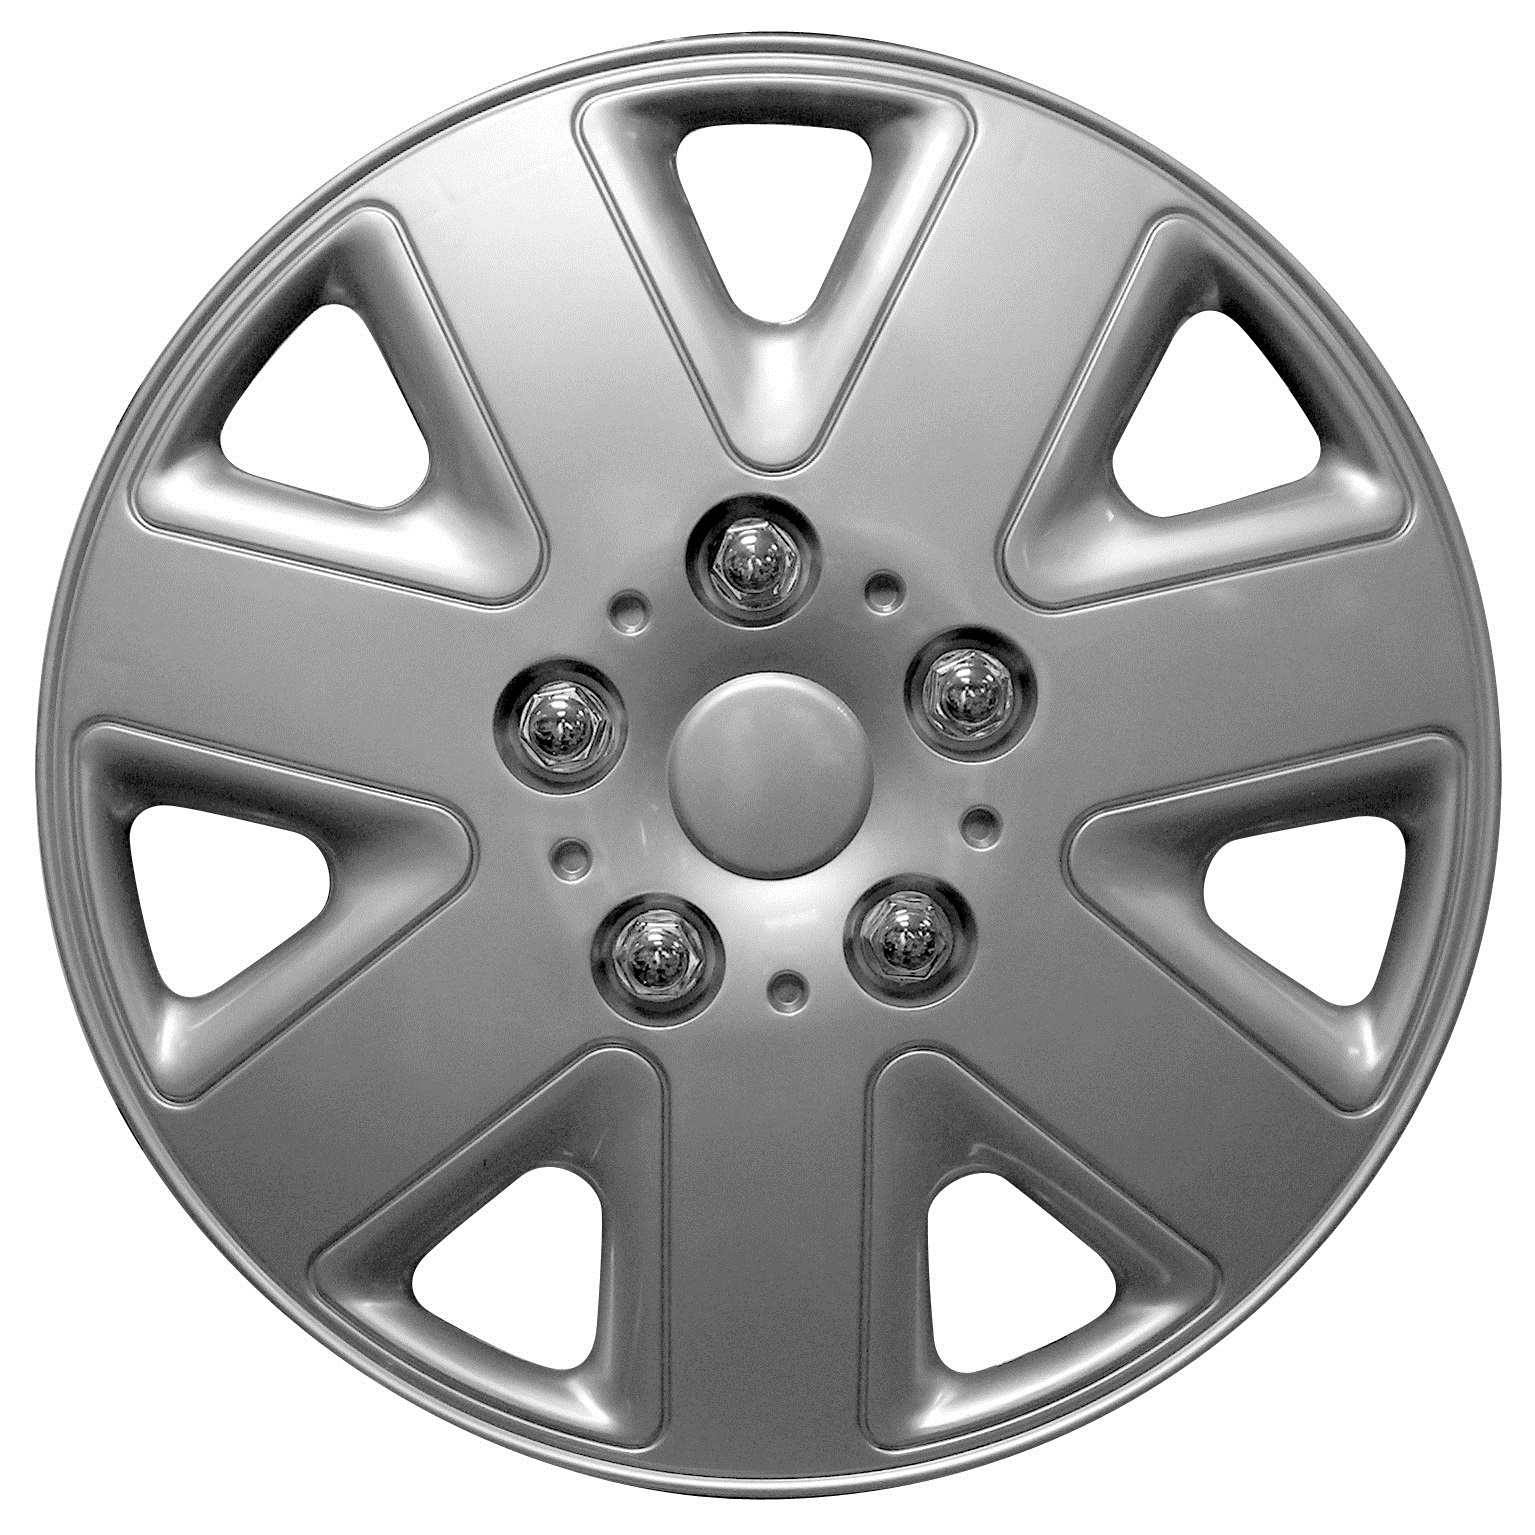 Details about Streetwize Hurricane 14 Inch Wheel Trim Set Silver Set of 4 Hub Caps Covers 14